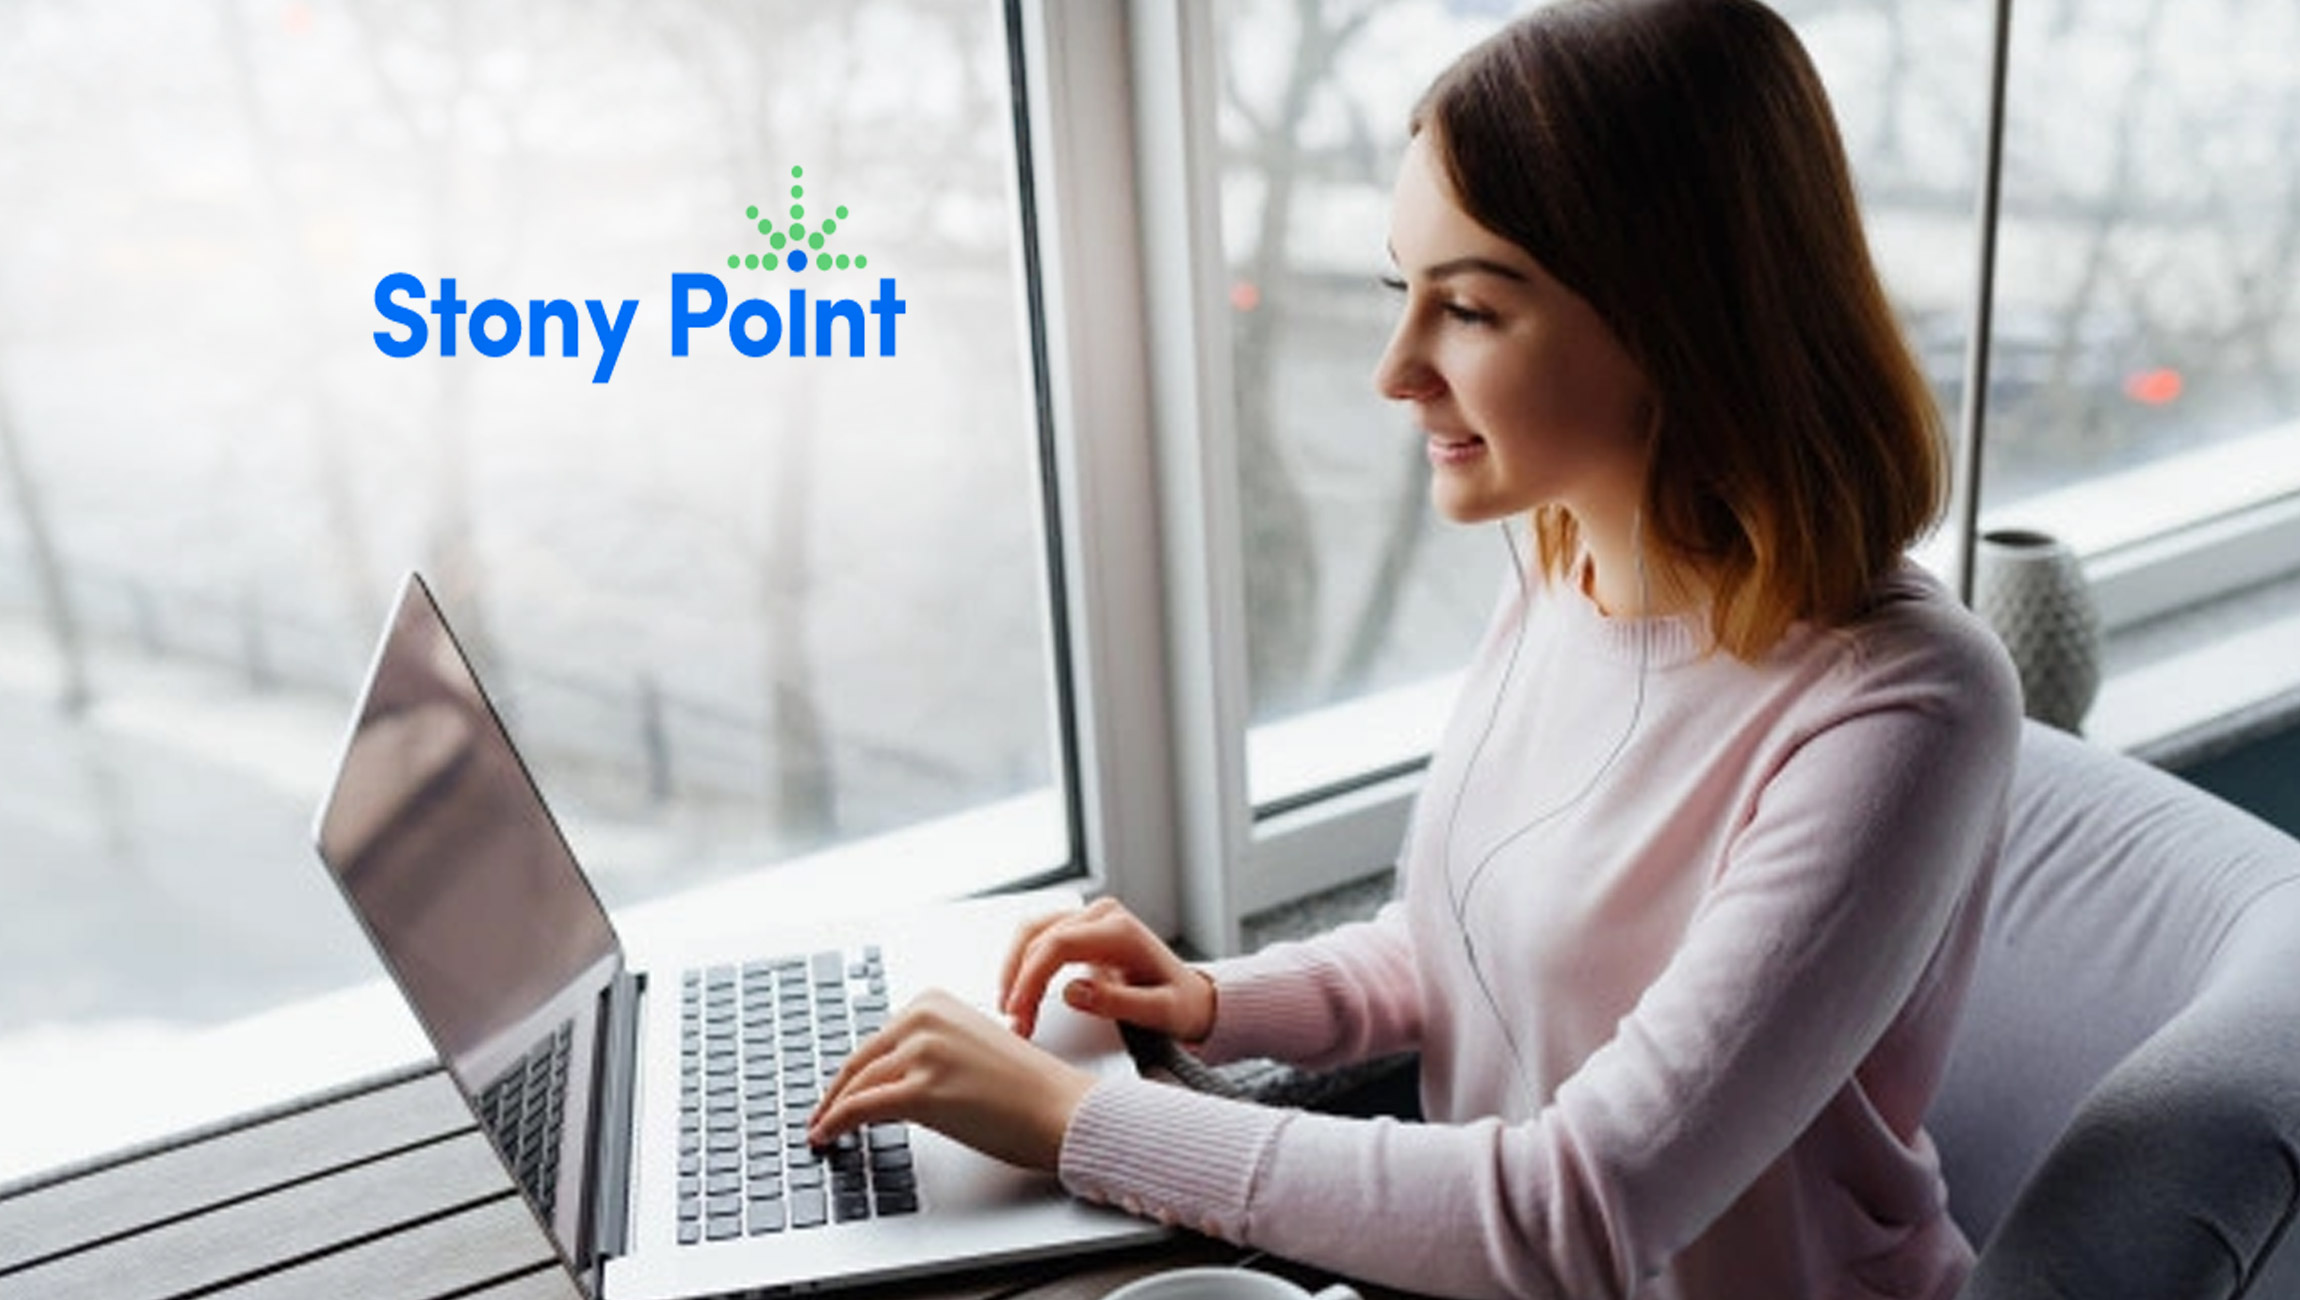 Stony-Point-Launches-Select-Institute-of-Technology_-An-Innovative-Salesforce-Career-Training-School